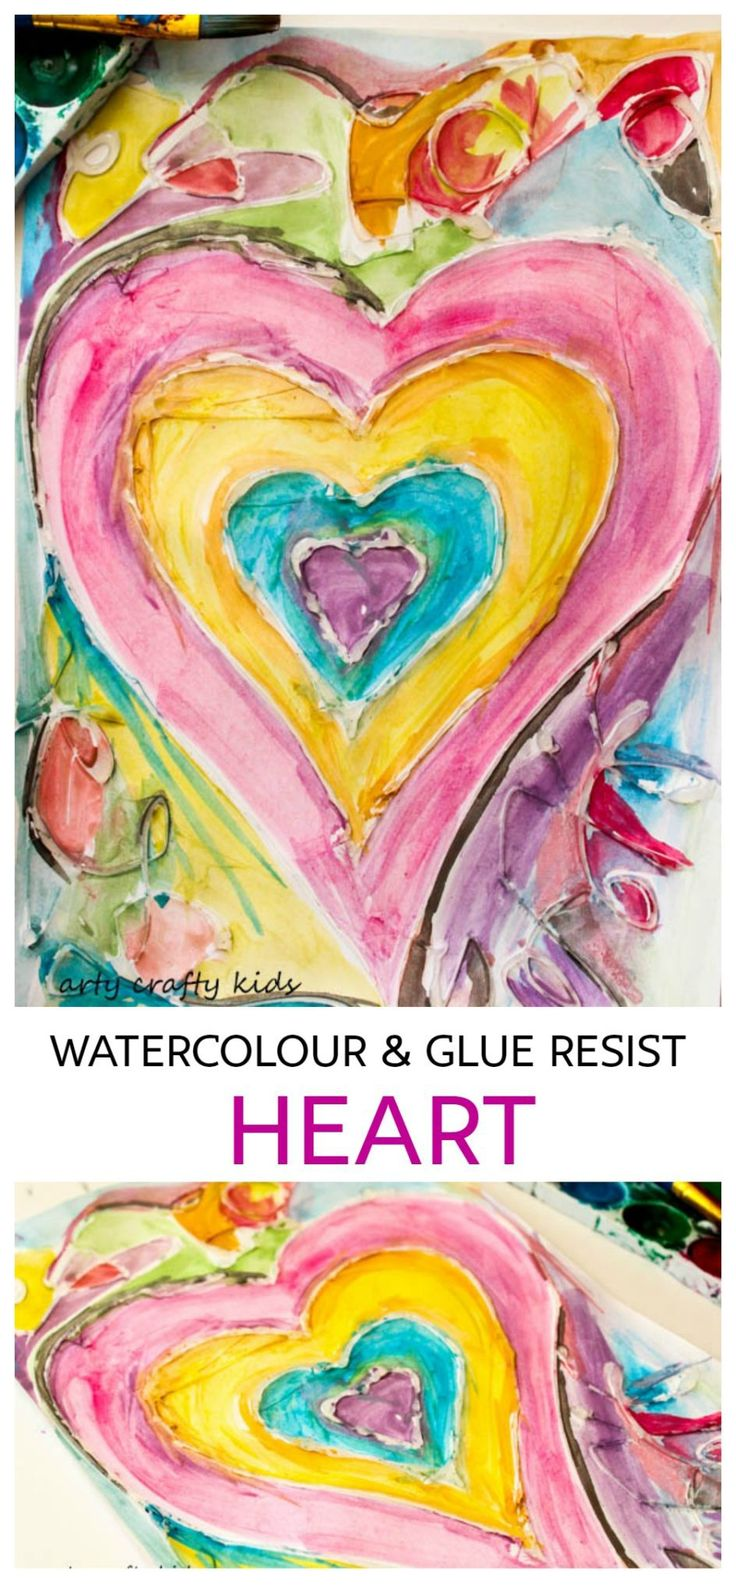 'Watercolour and Glue Resist Heart Painting...!' (via Arty Crafty Kids)